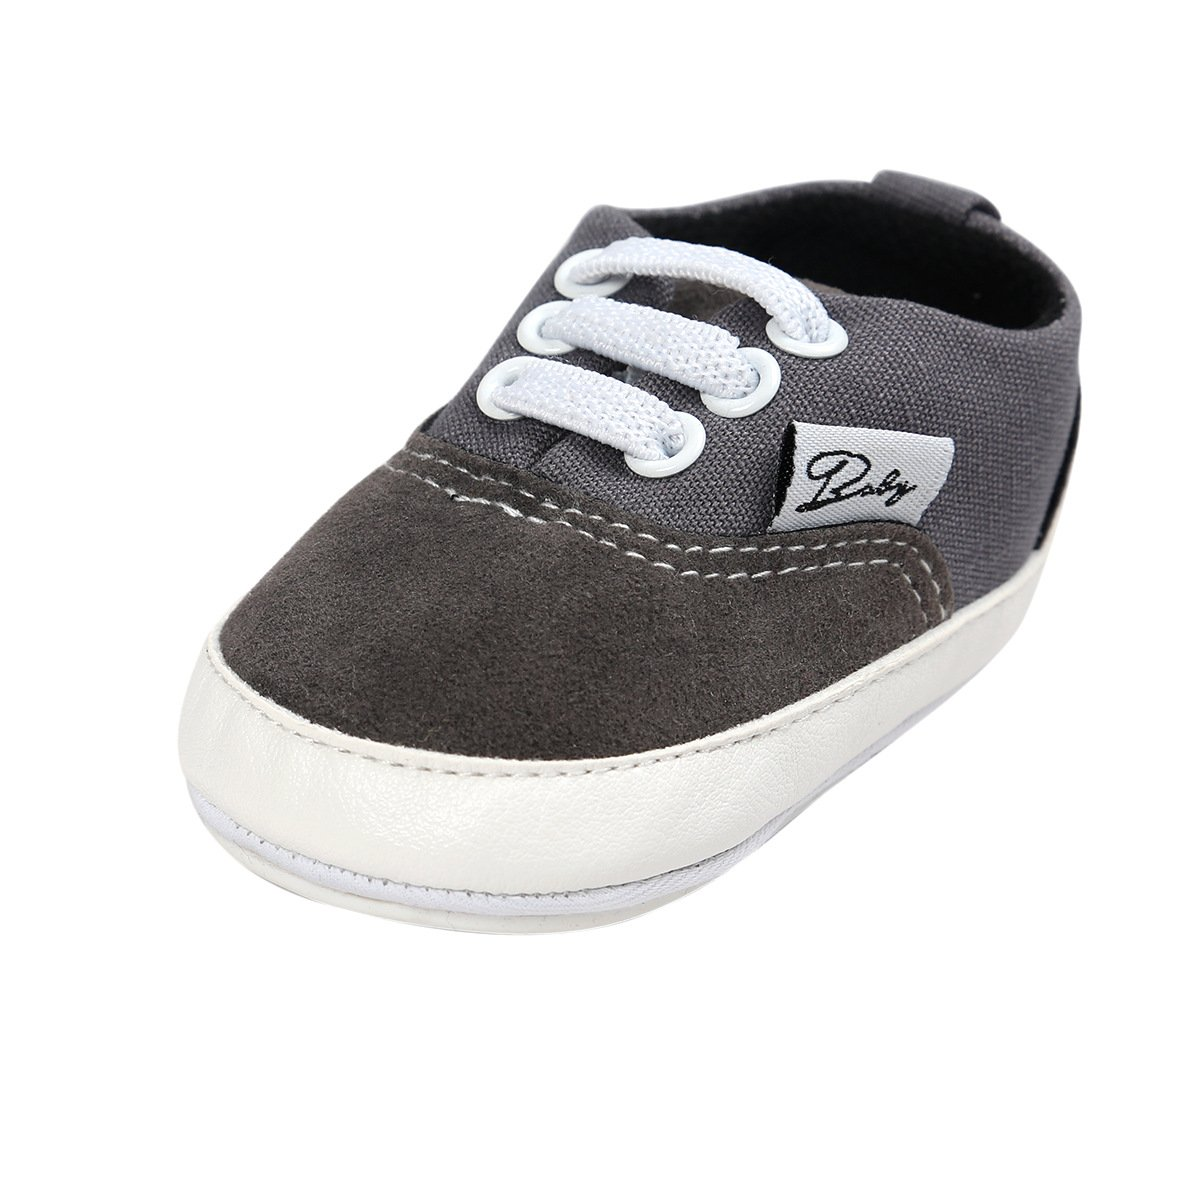 BENHERO Baby Boys Girls Canvas Toddler Sneaker Anti-slip First Walkers Candy Shoes 0-24 Months 12 Colors (13cm(12-18months), Grey)